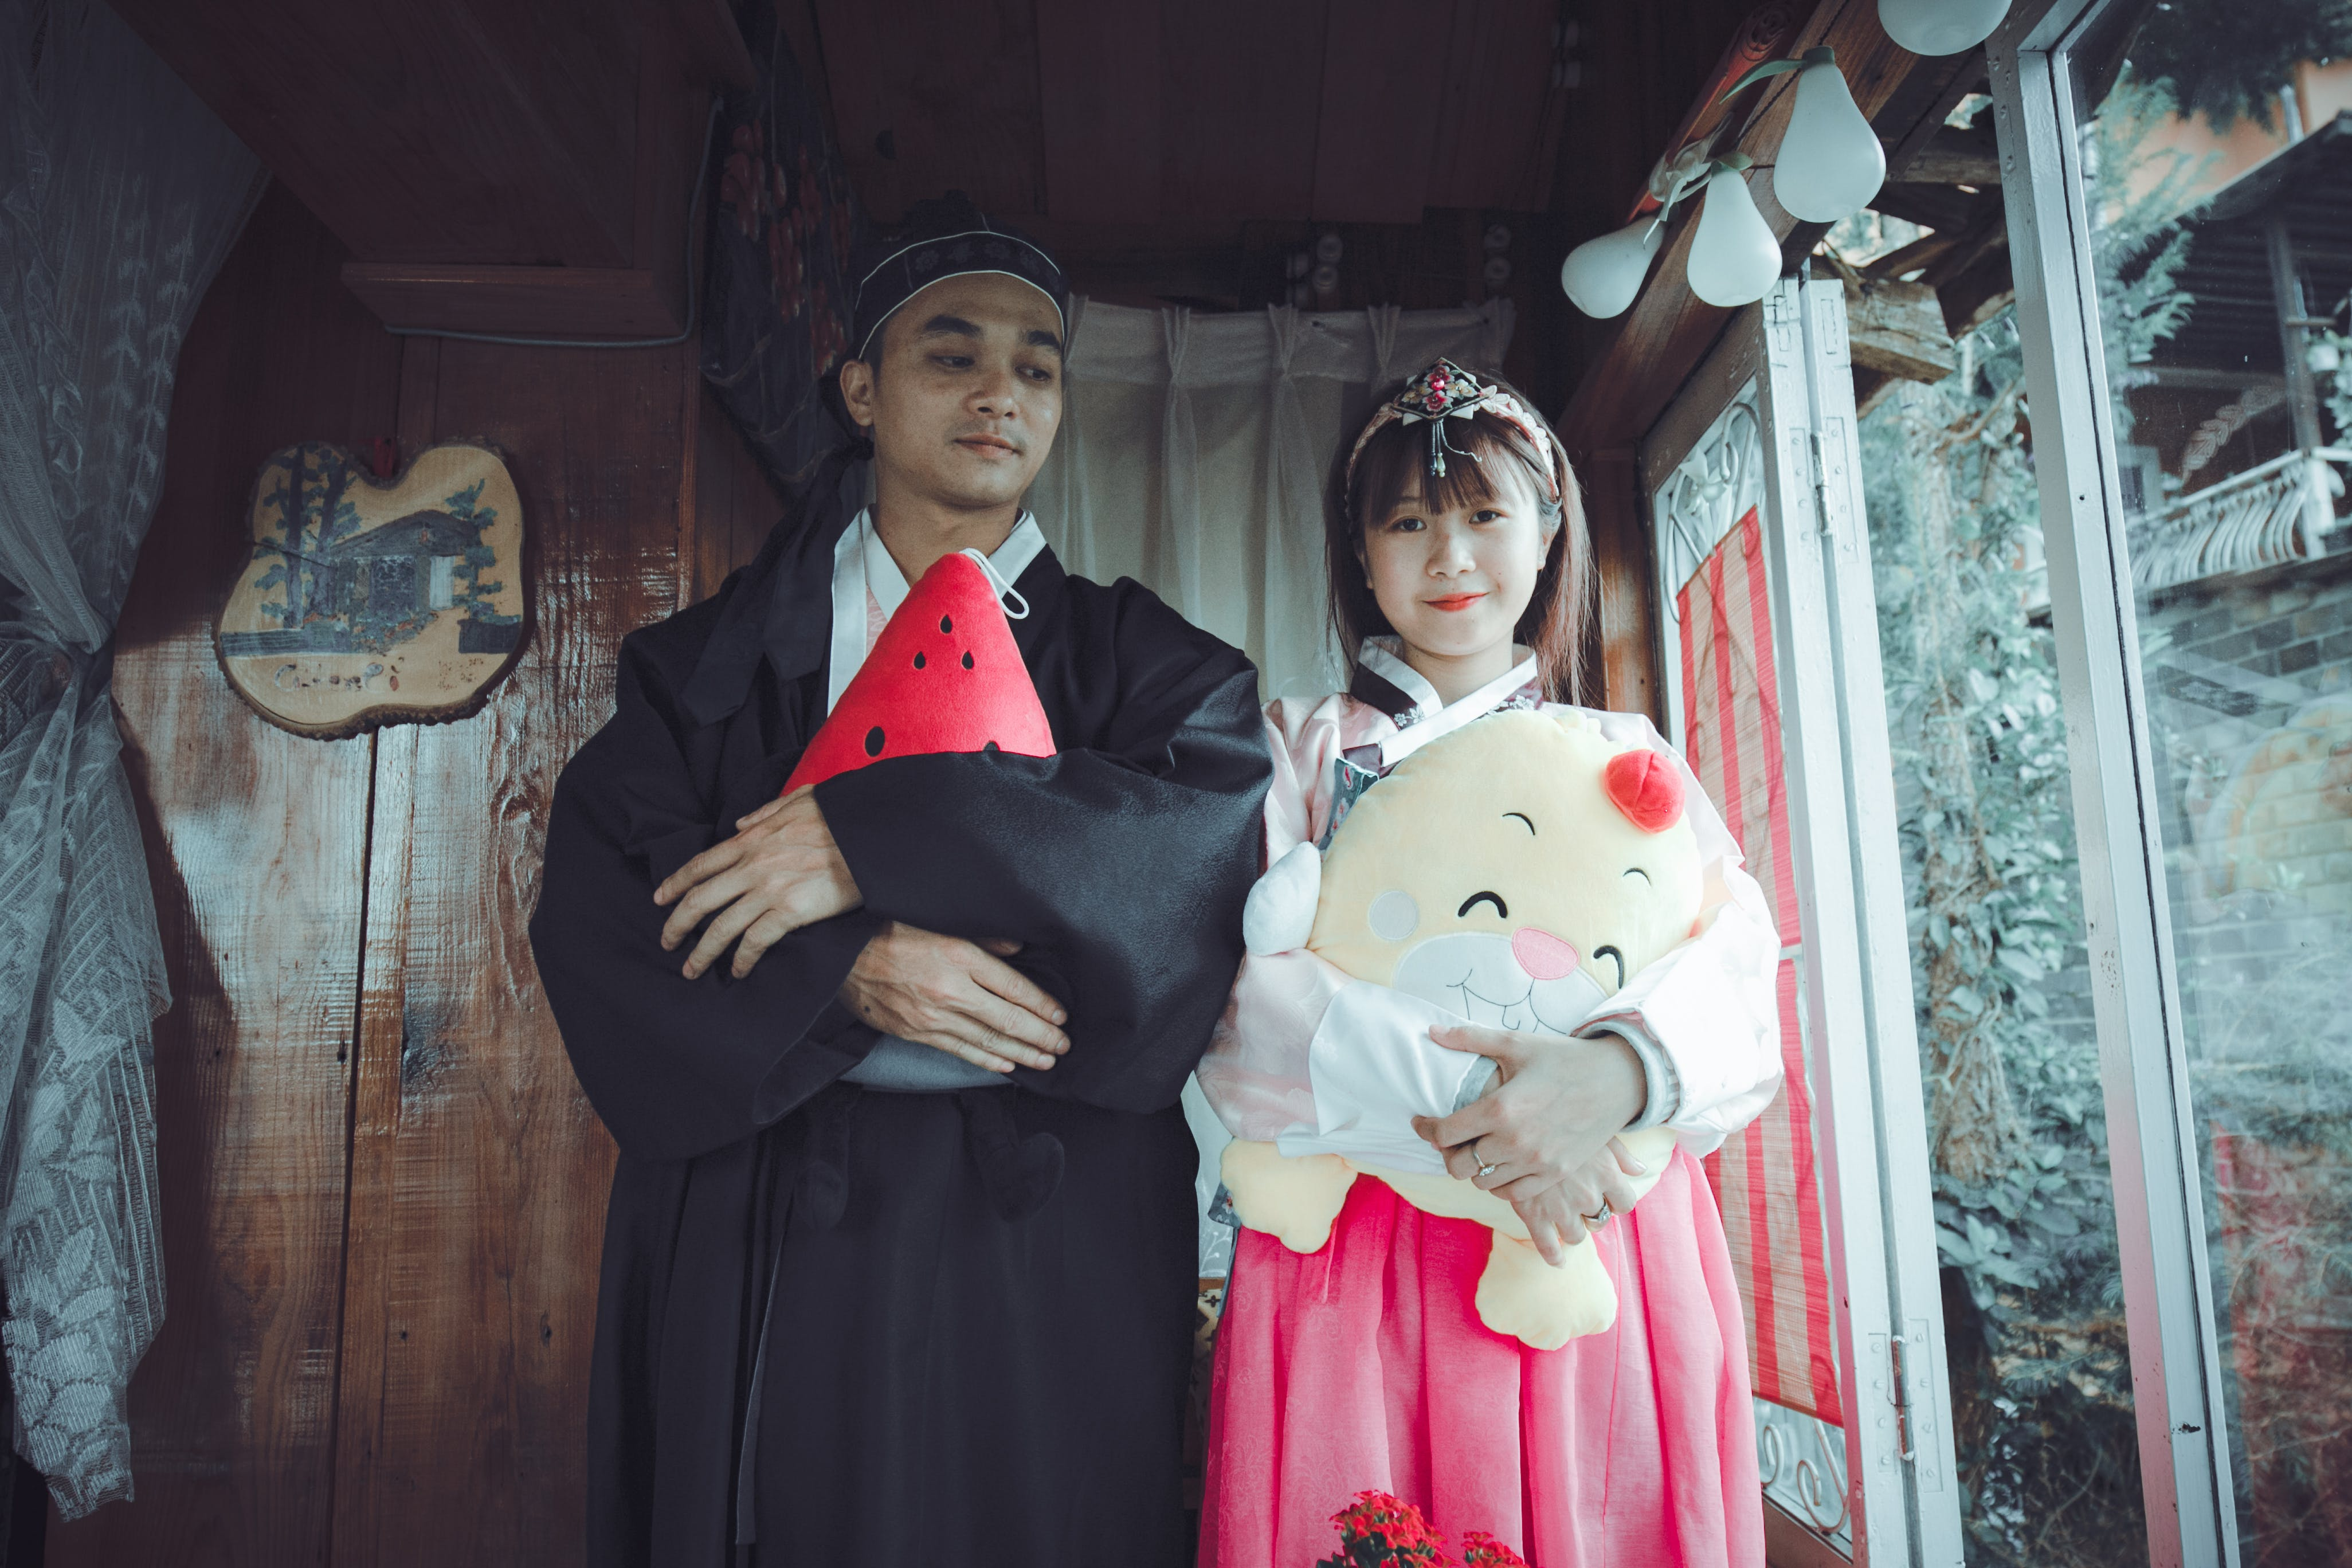 Man and Woman Wearing Traditional Dresses